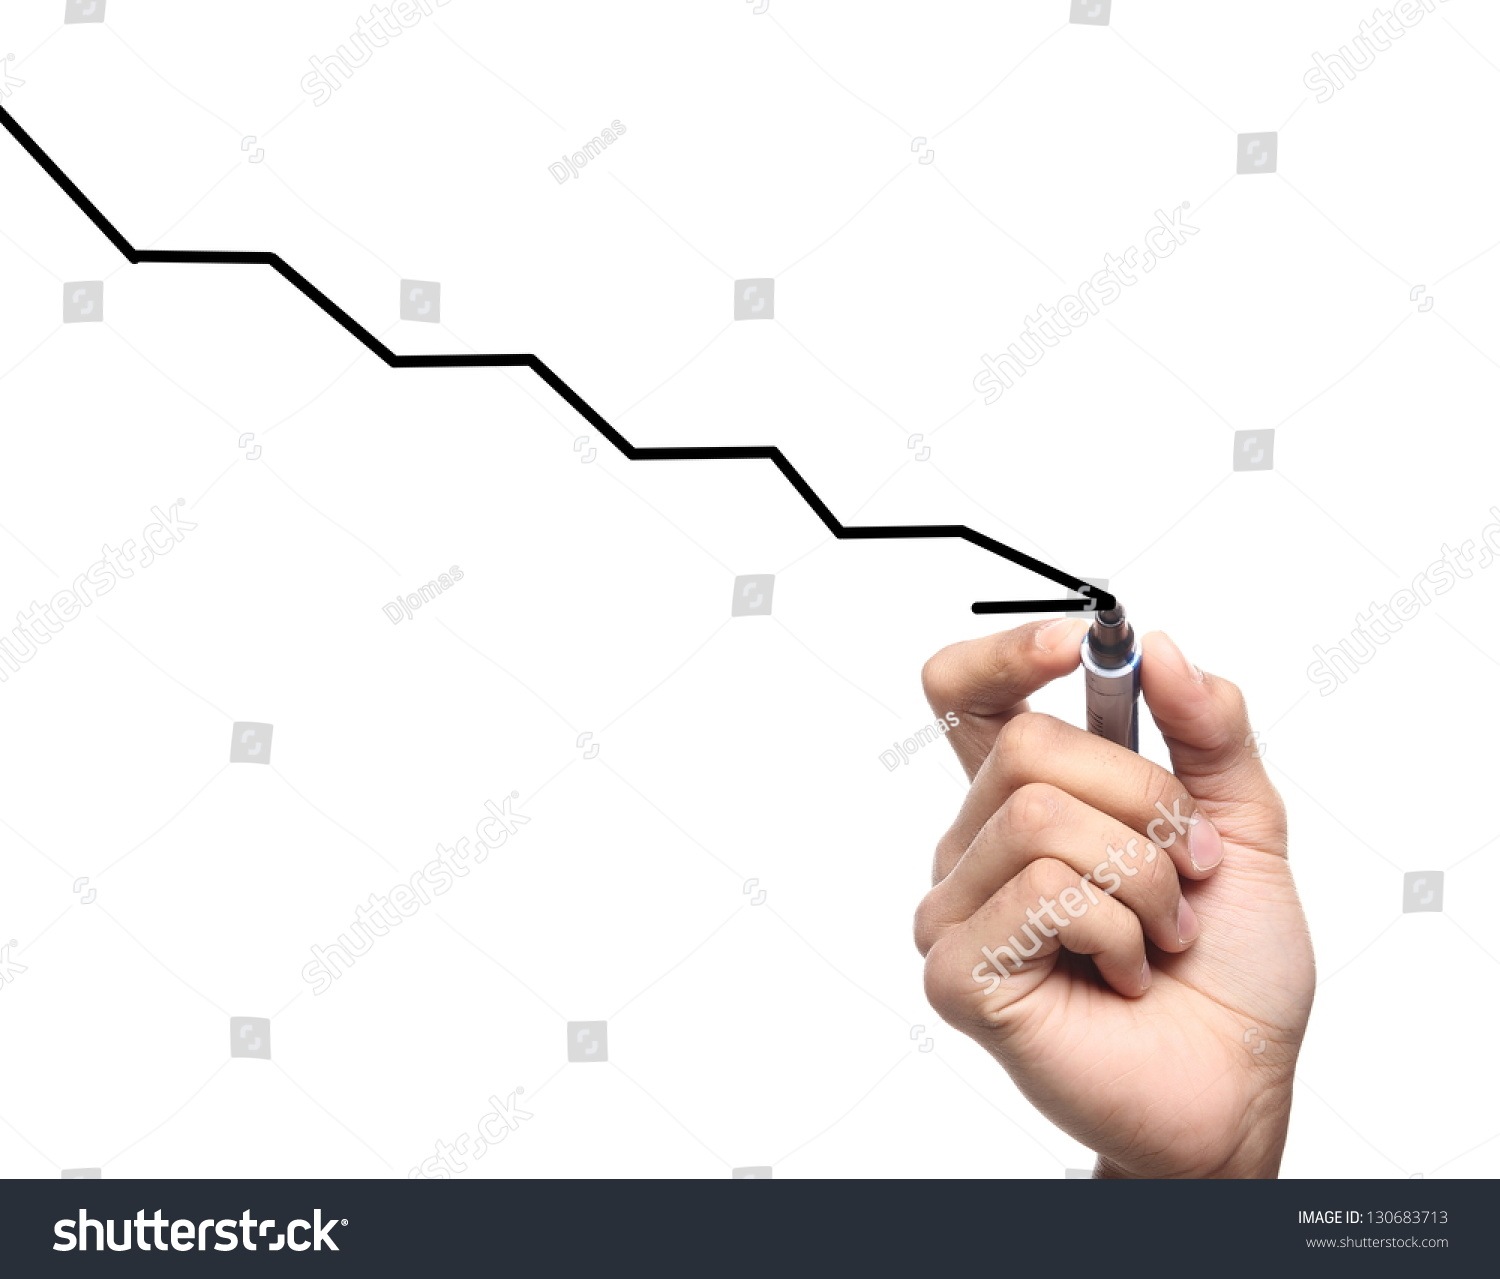 Drawing Line Graphs By Hand : Hand drawing graph stock photo shutterstock